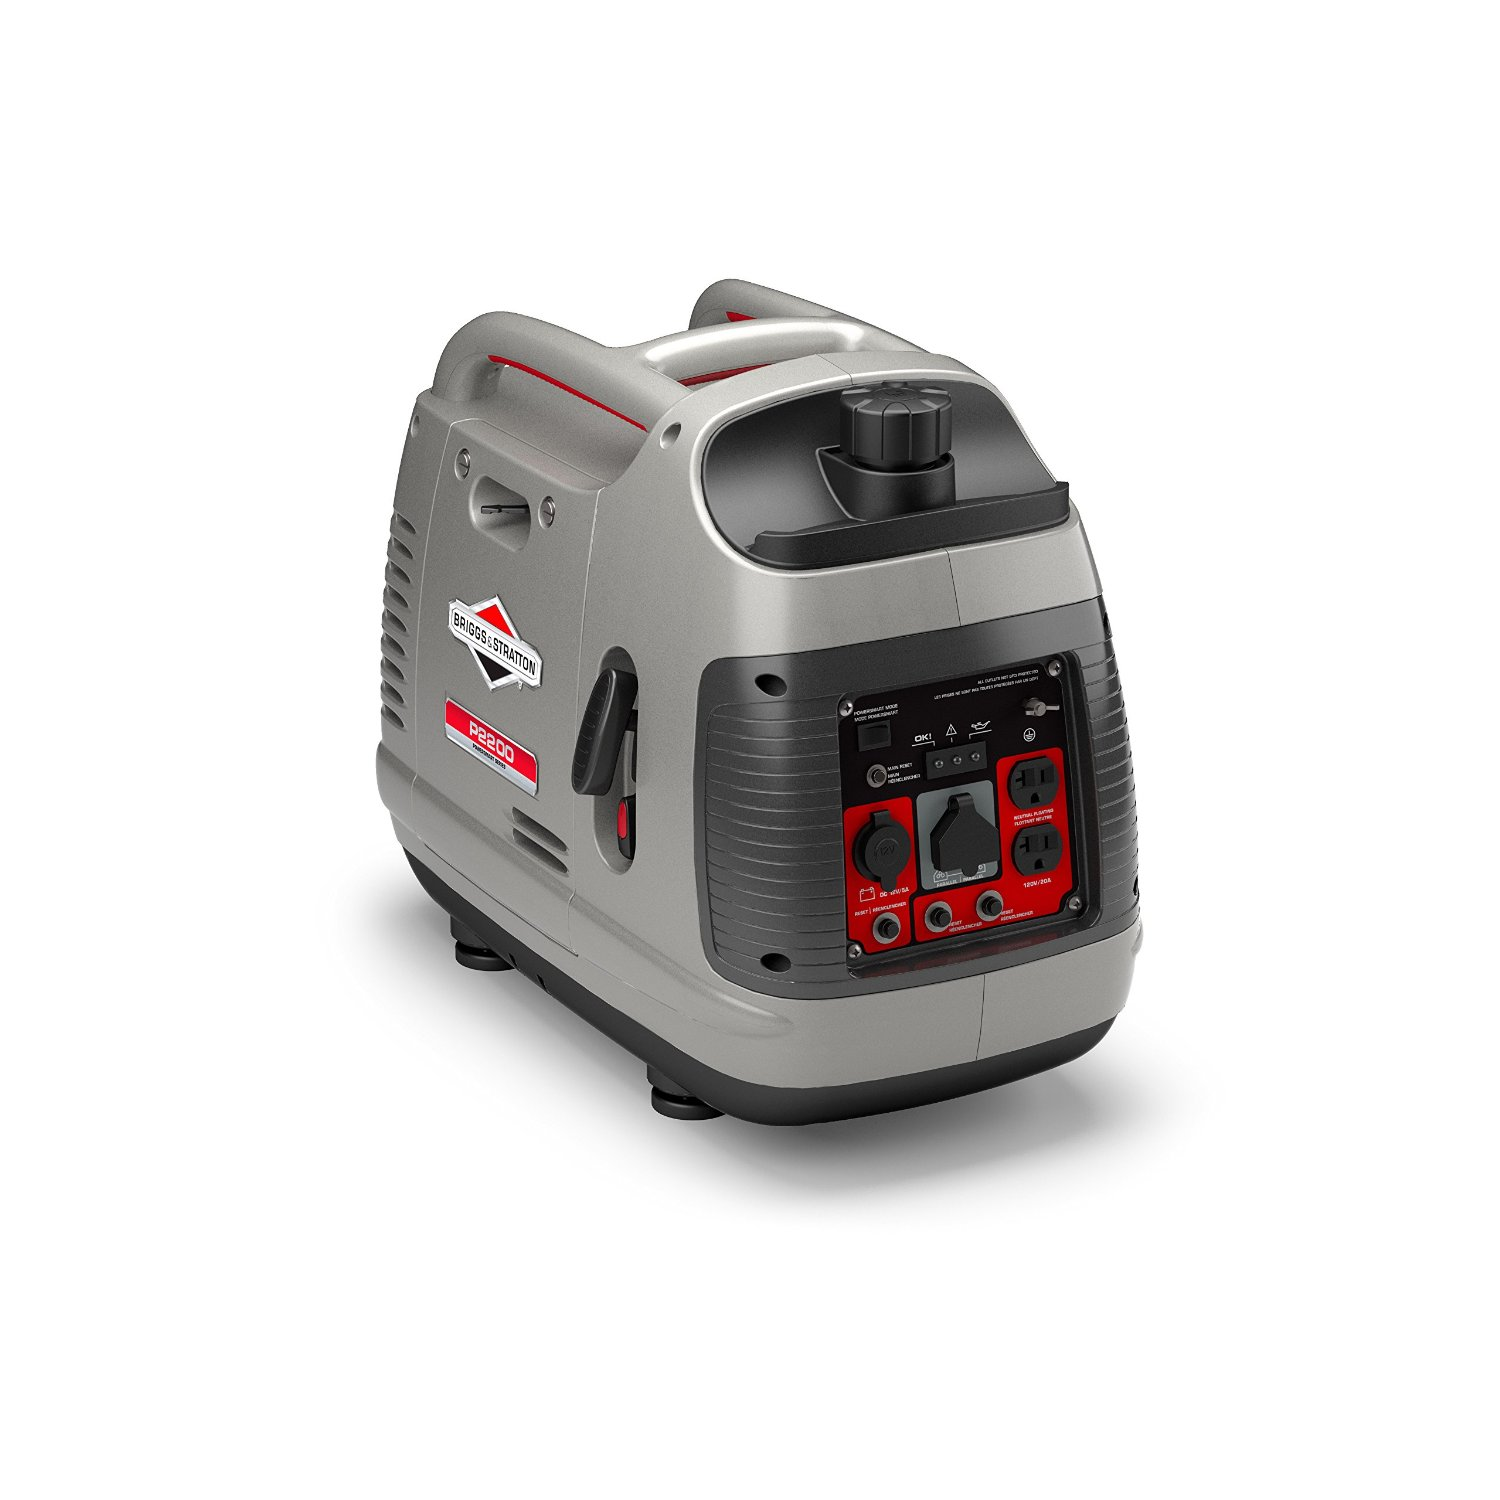 Briggs & Stratton 30651 P2200 PowerSmart Series Portable 2200-Watt Inverter Generator